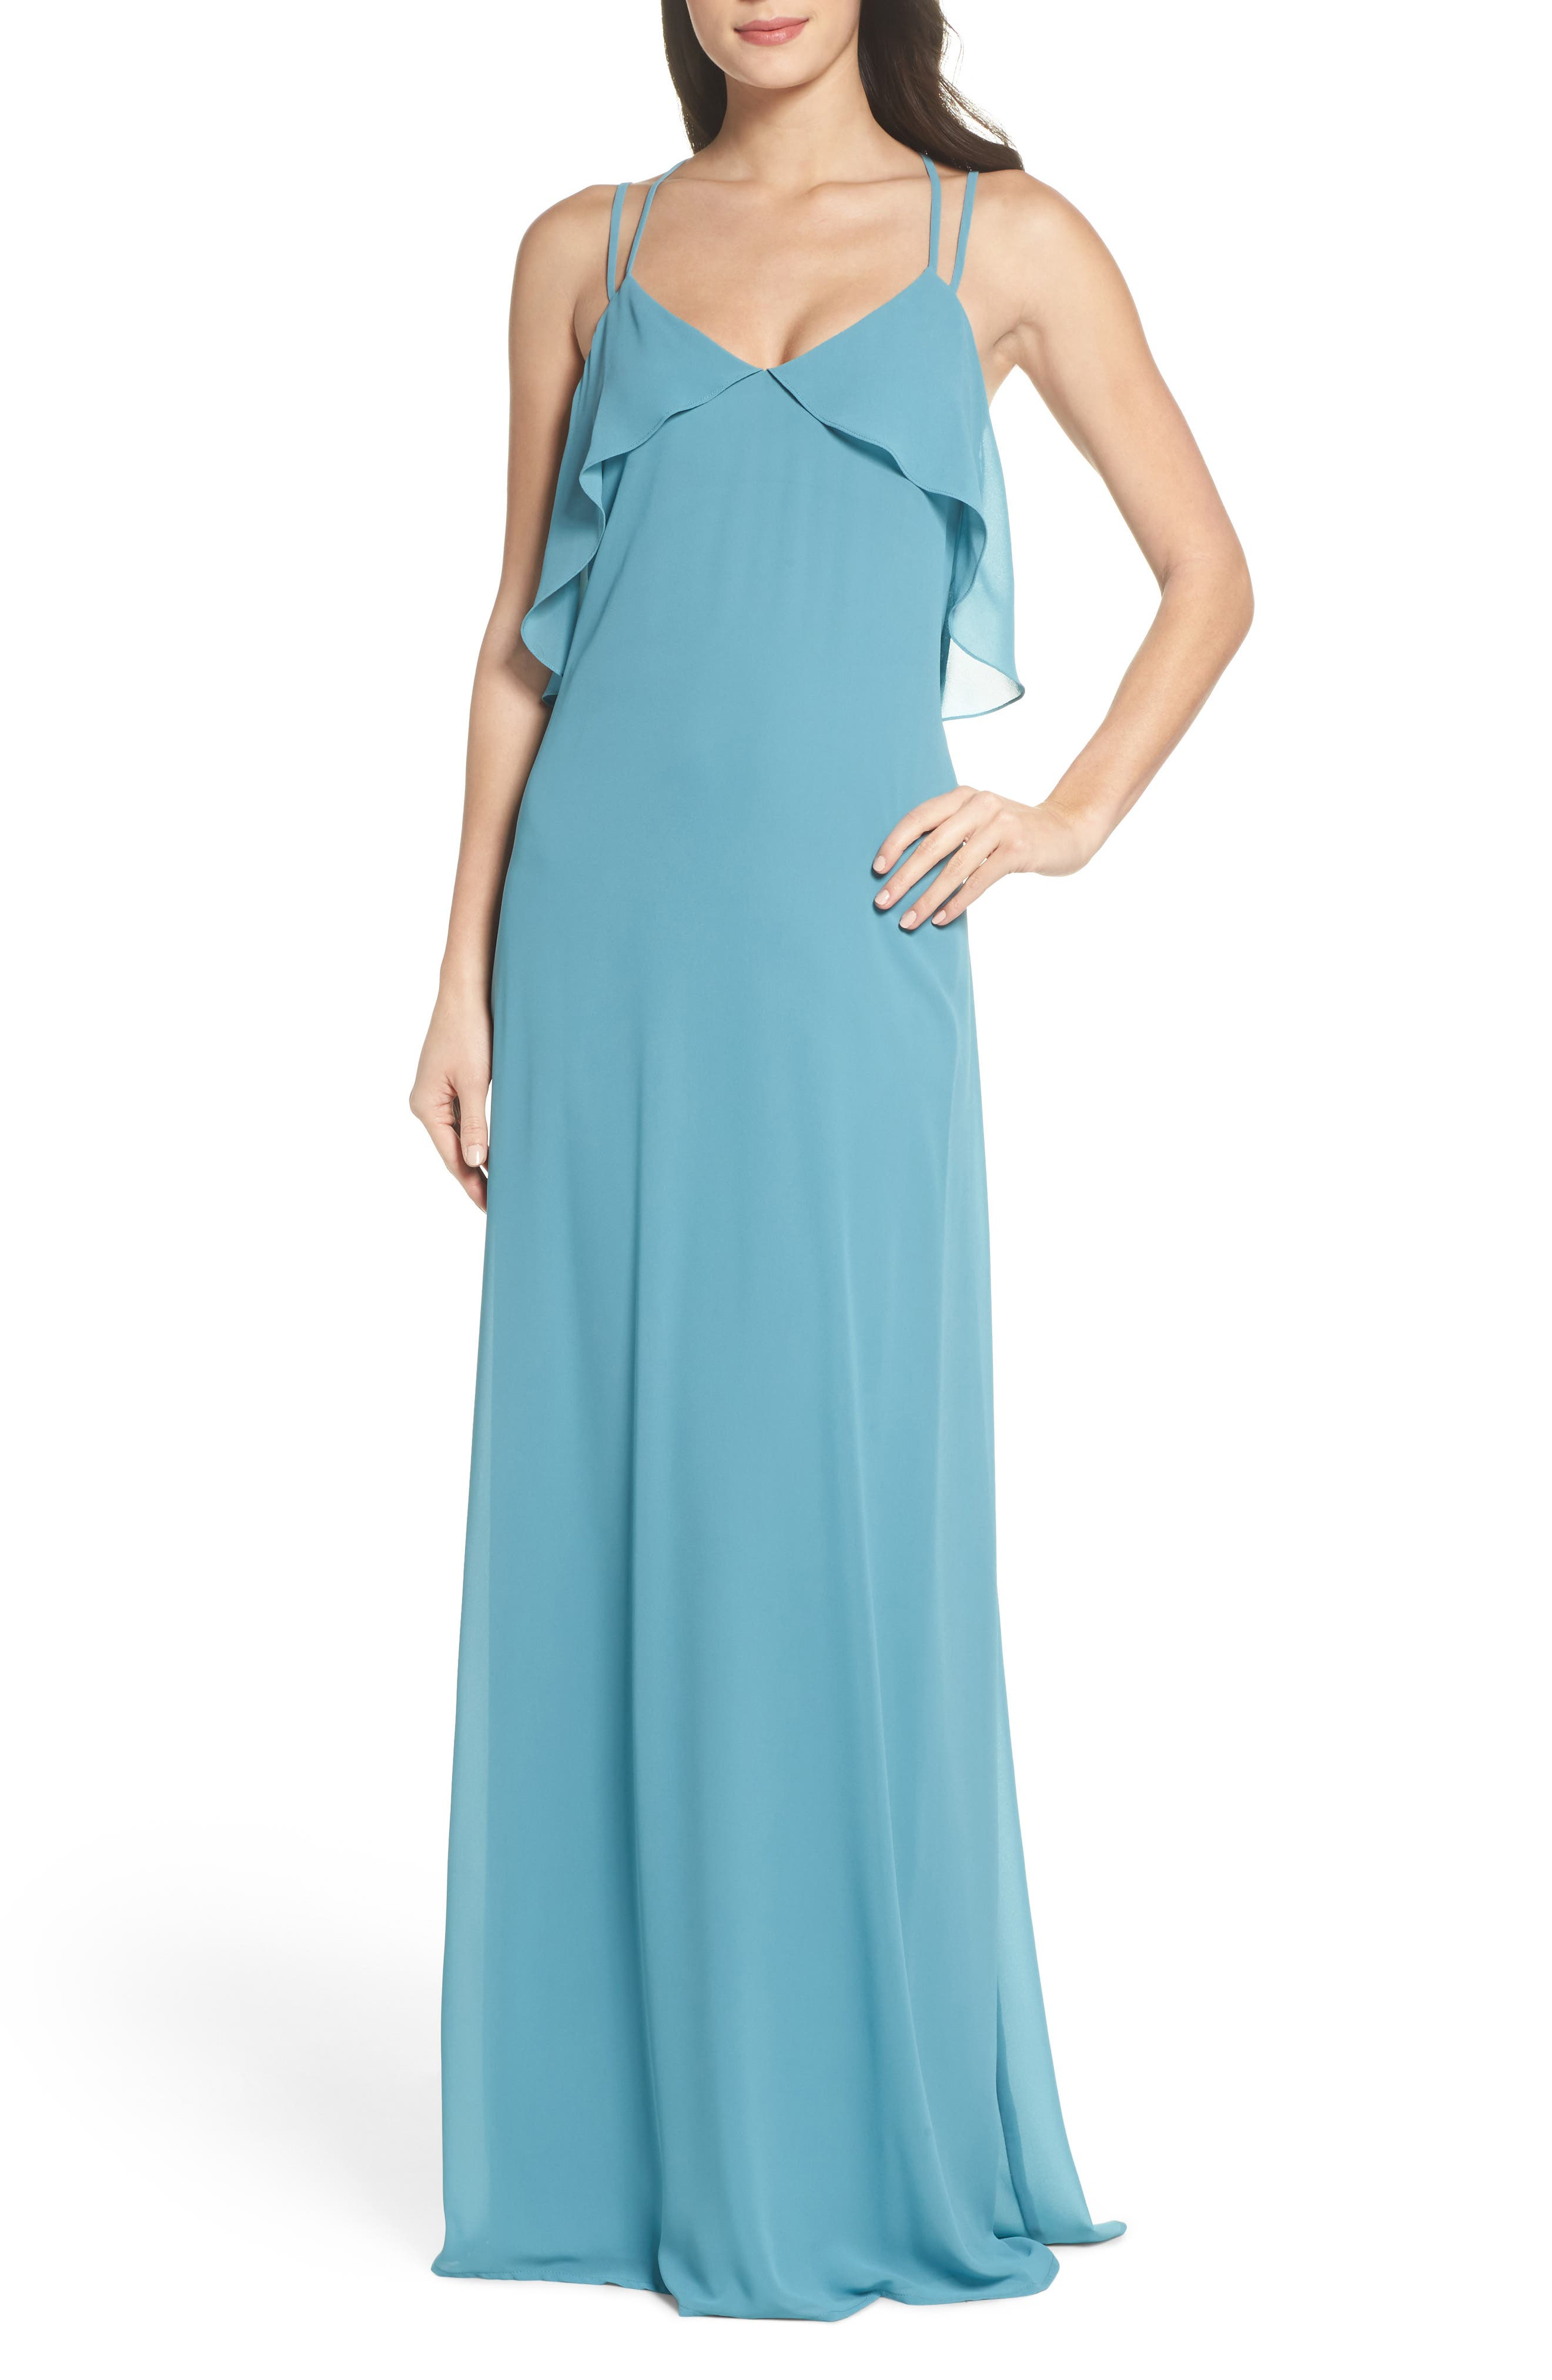 Avery Strappy Ruffle V-Neck Gown,                             Main thumbnail 1, color,                             400